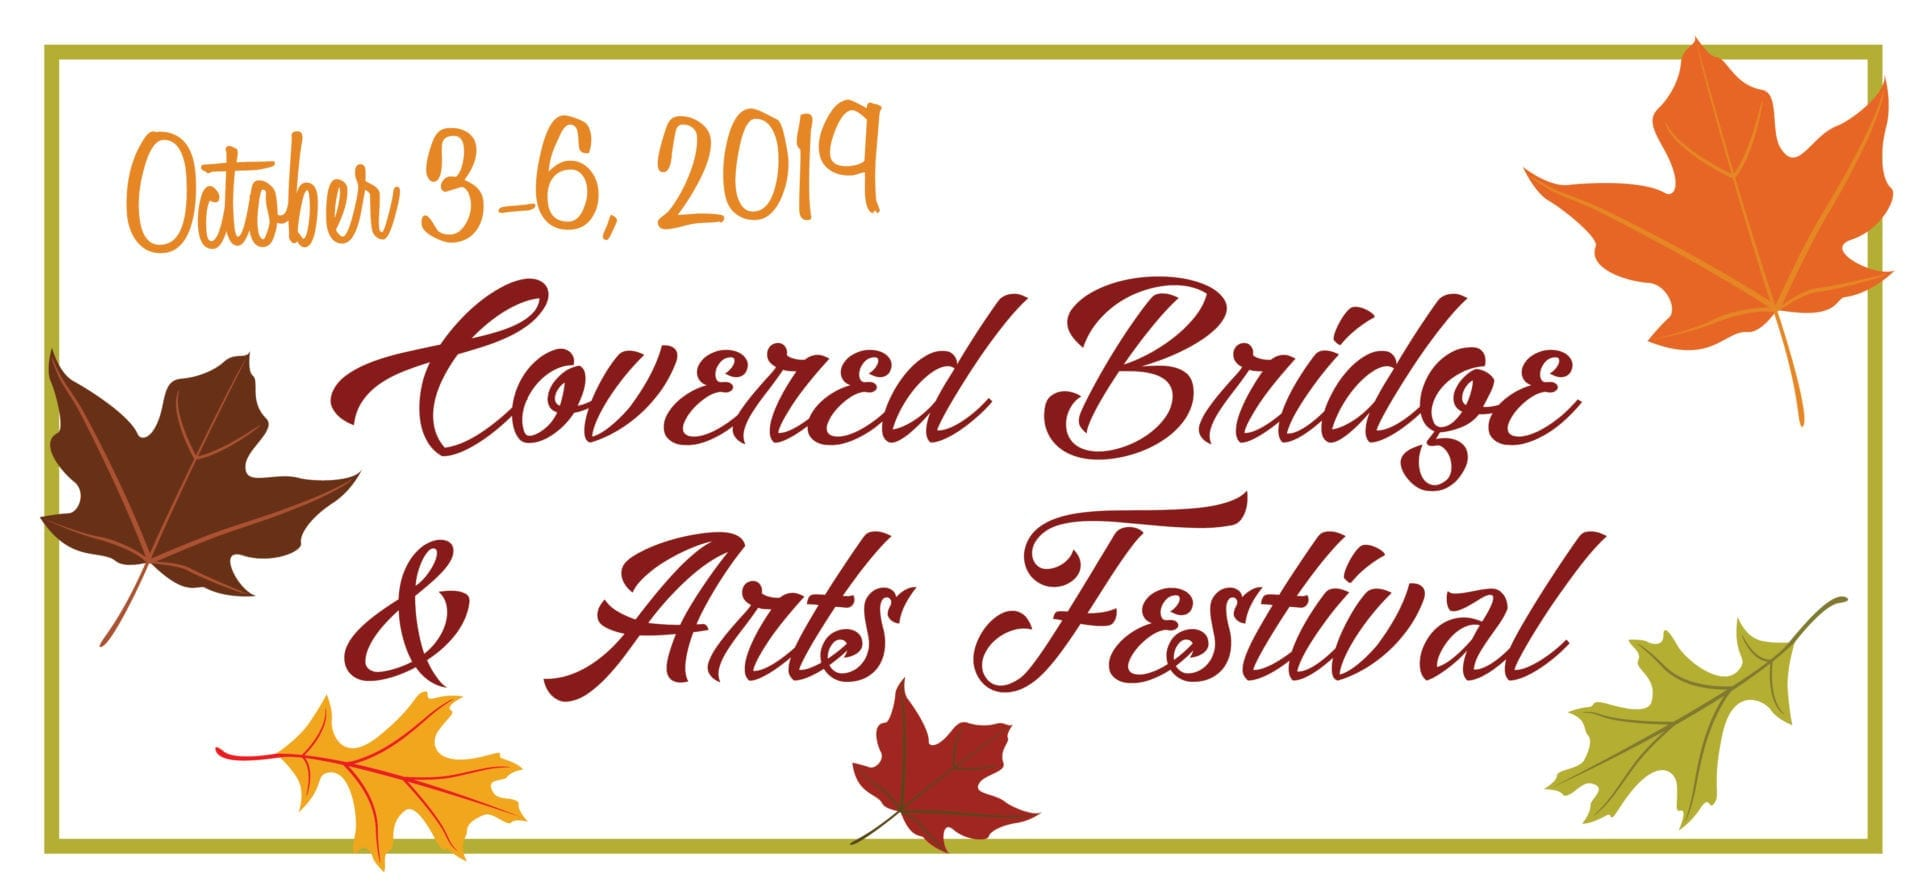 Covered Bridge Festival Indiana Map.Covered Bridge Festival Experience Columbia Montour Counties